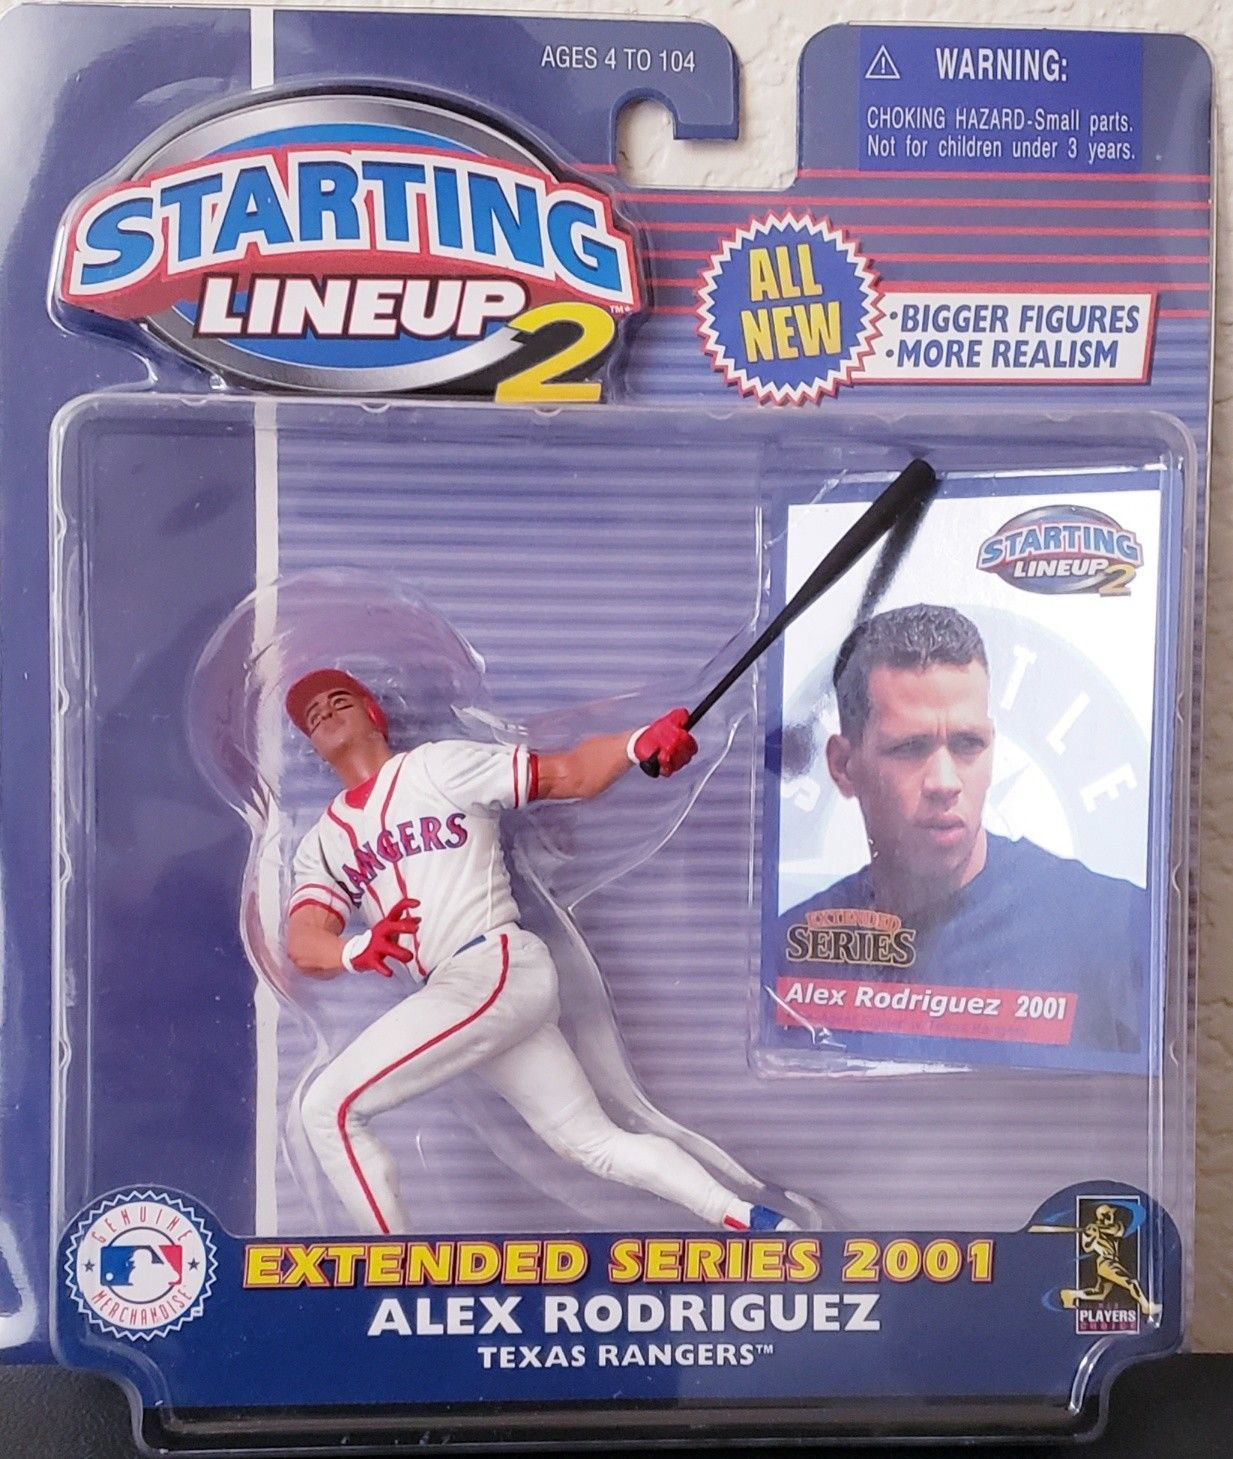 2001 Starting Lineup 2 Extended Series Alex Rodriguez Texas Rangers MLB Figure - $5.64